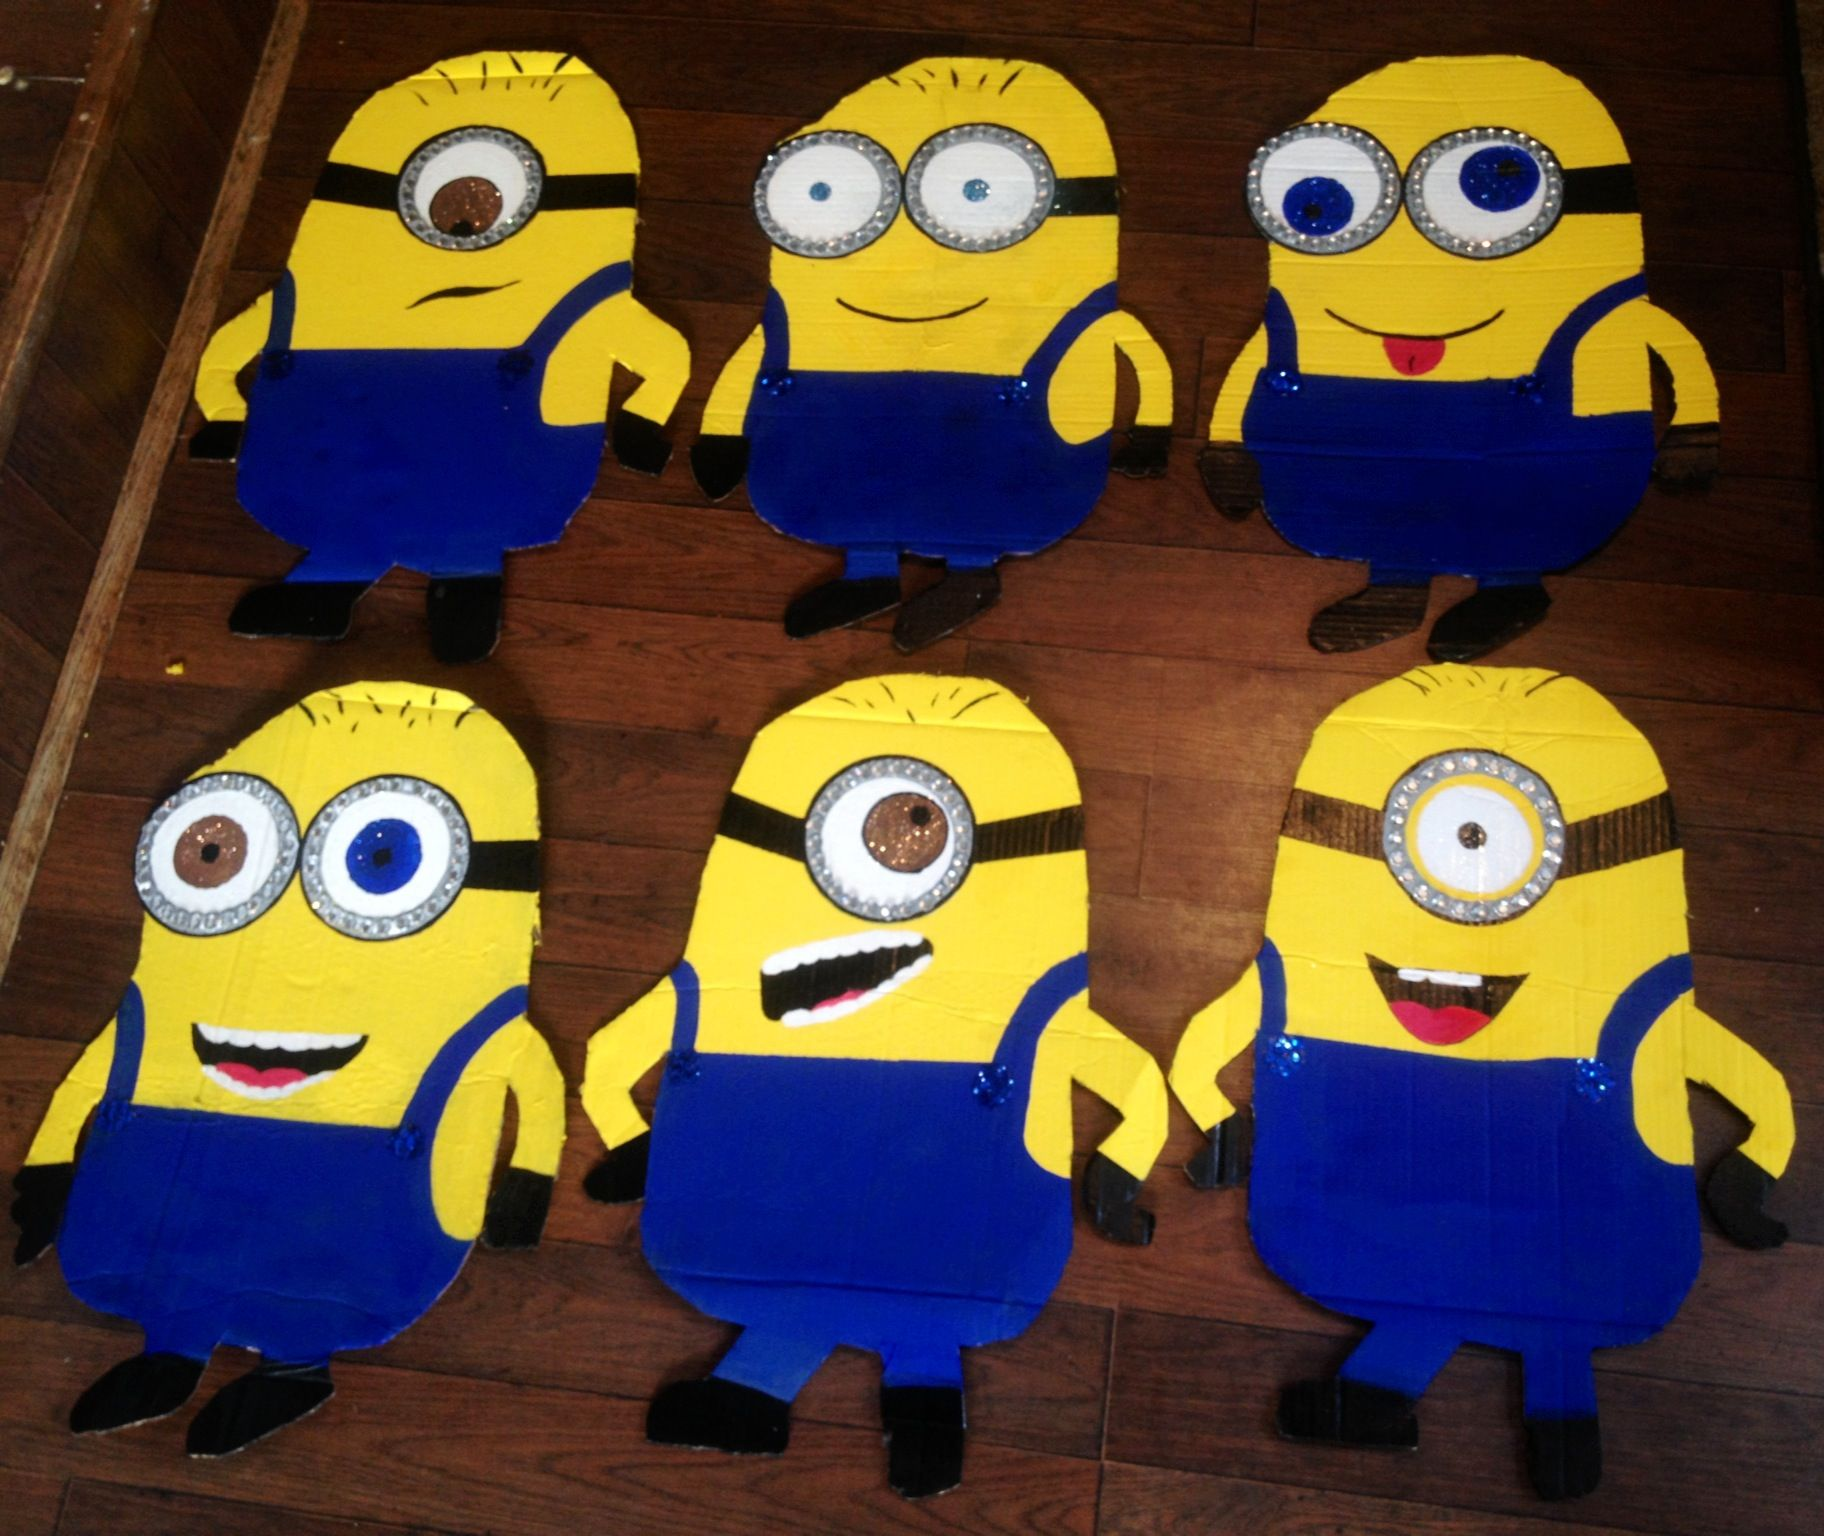 Homemade Minion Decorations From Cardboard Tracing And Cuting Out Using One As A Layout Traced It Cut More Painted Them